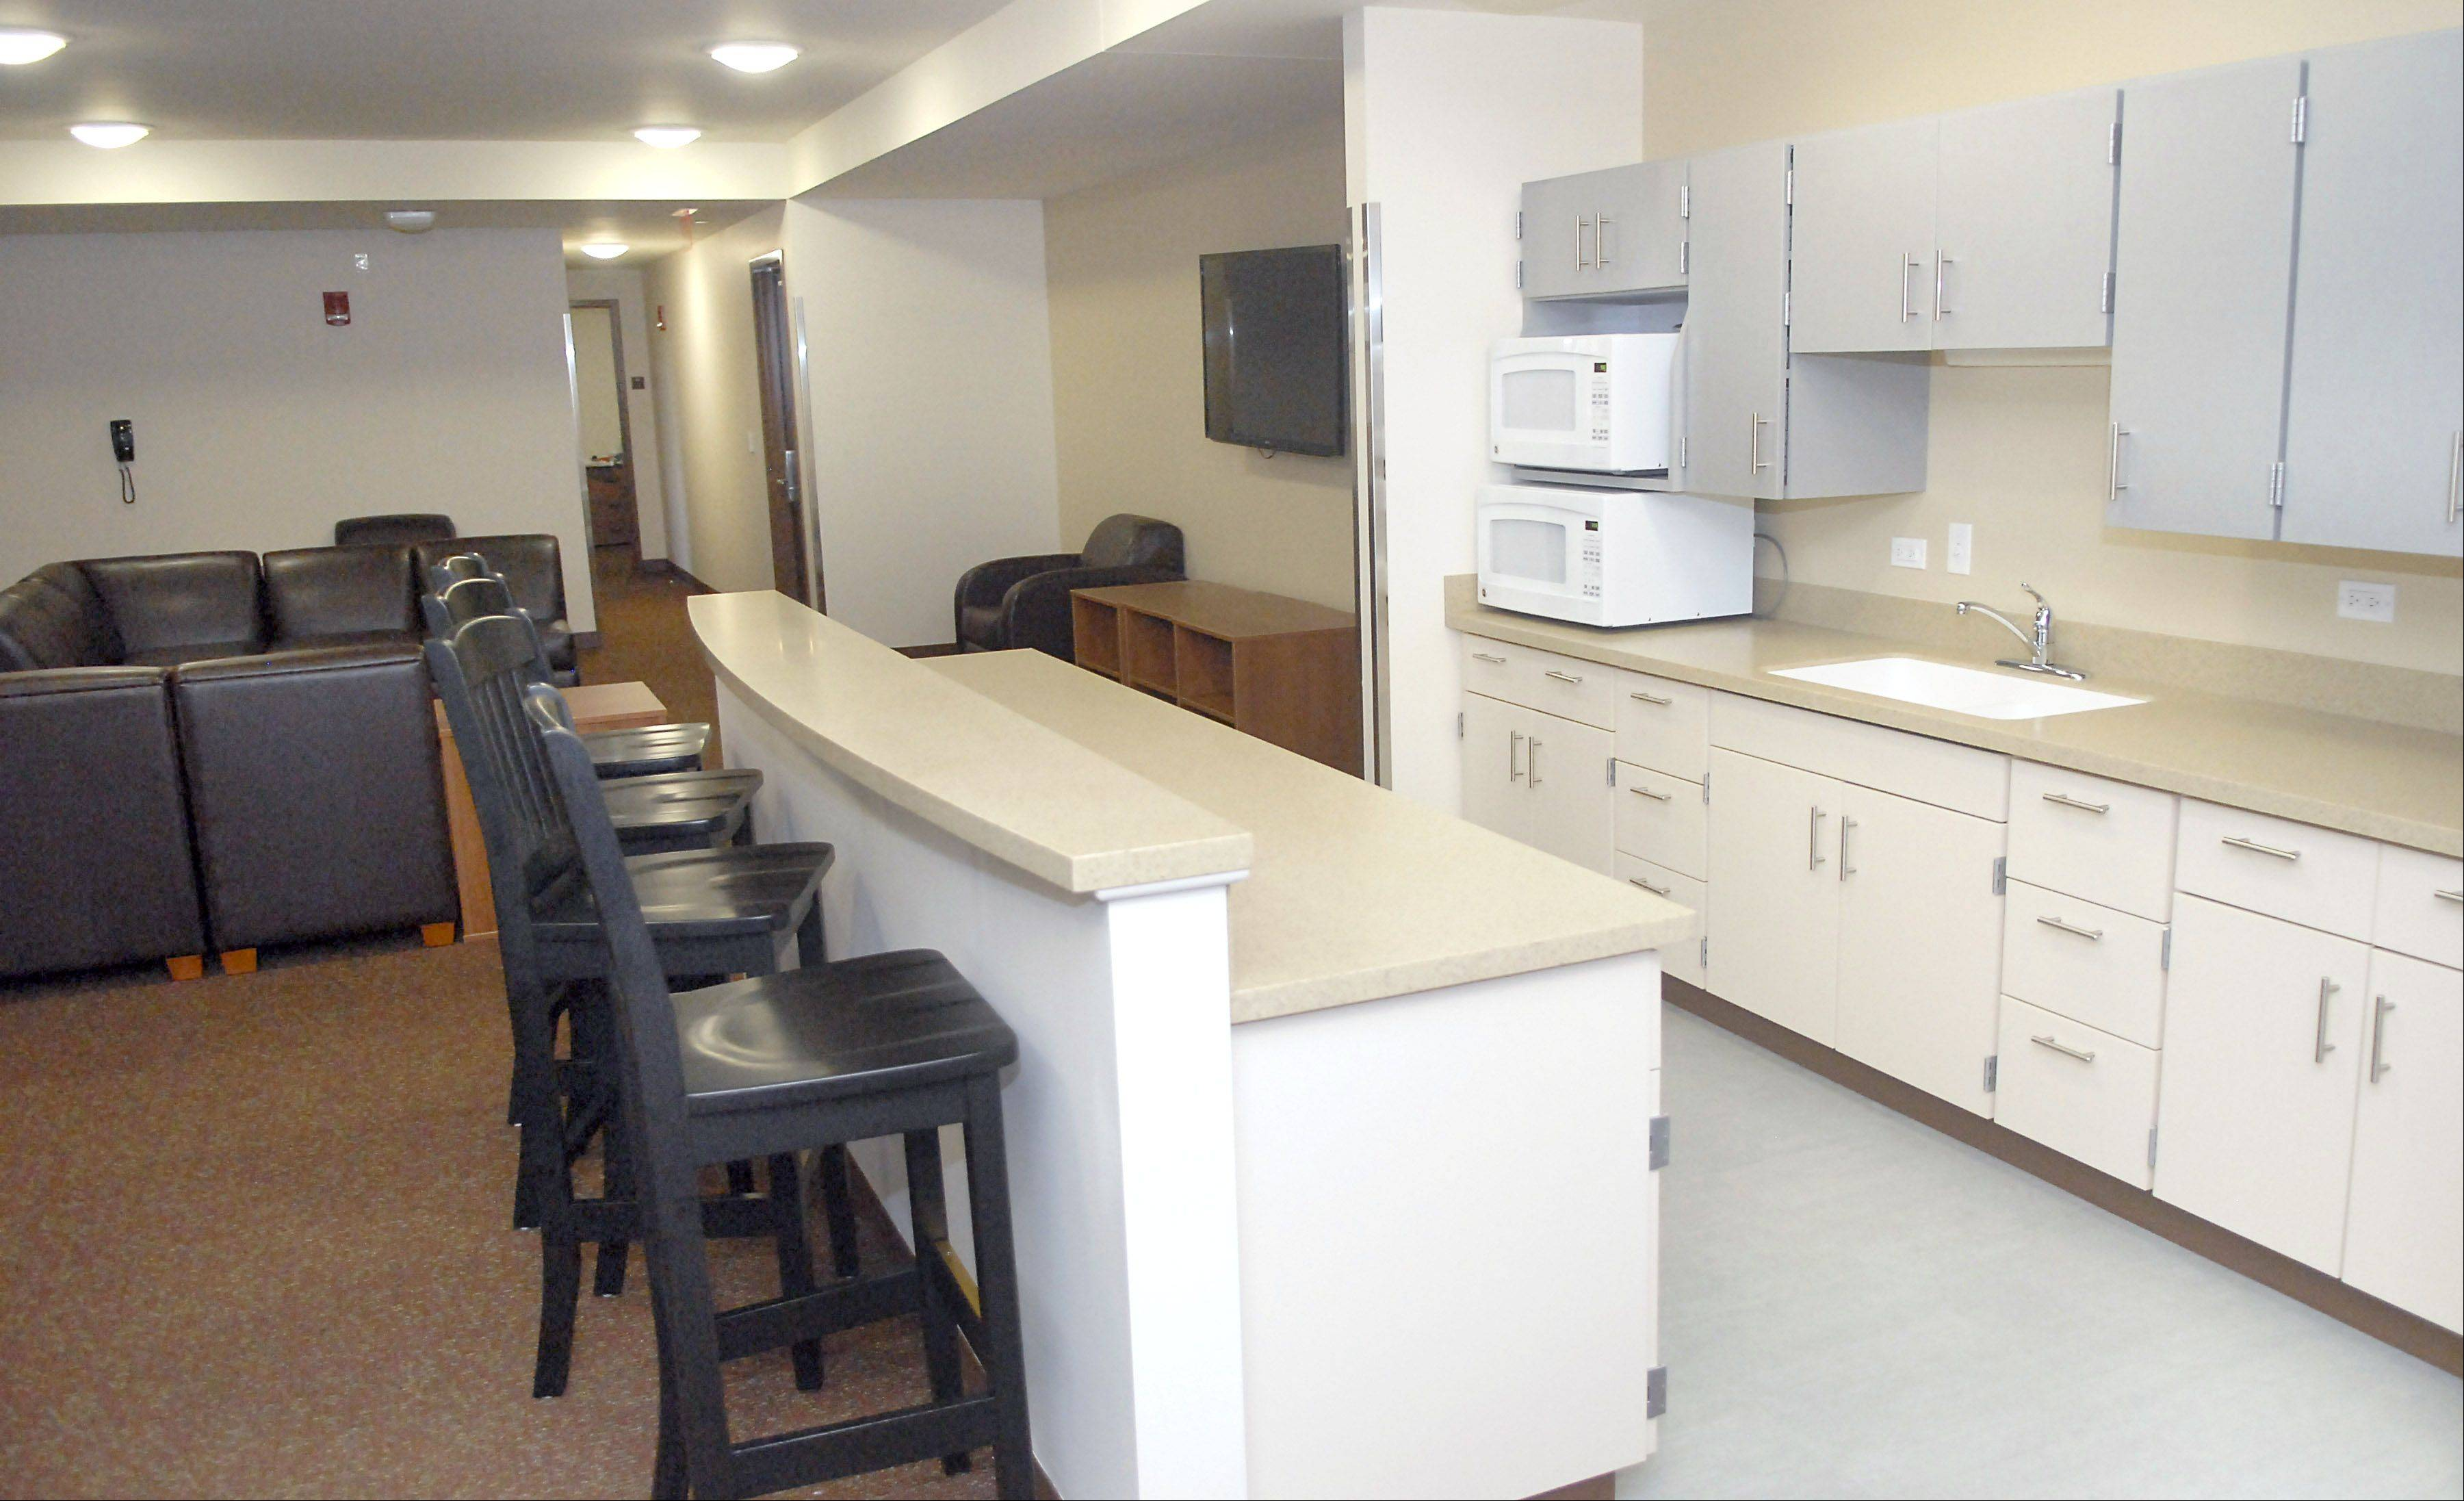 A kitchenette is pictured at the New Residence Hall West at Northern Illinois University in DeKalb on Thursday, August 23.